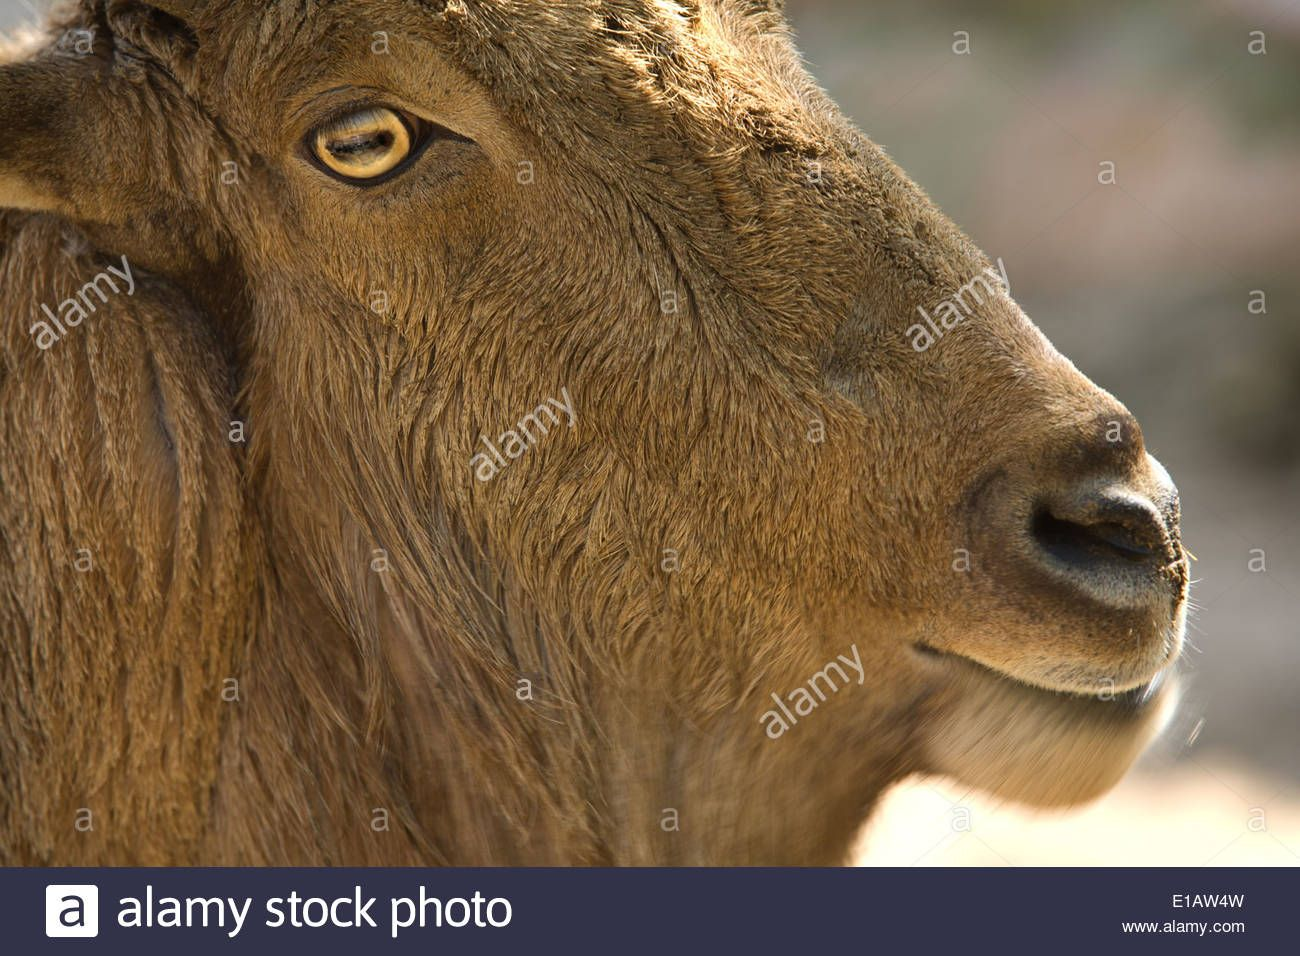 Pin by Nathan Winterland on Aoudad Animals, Photo, Panther